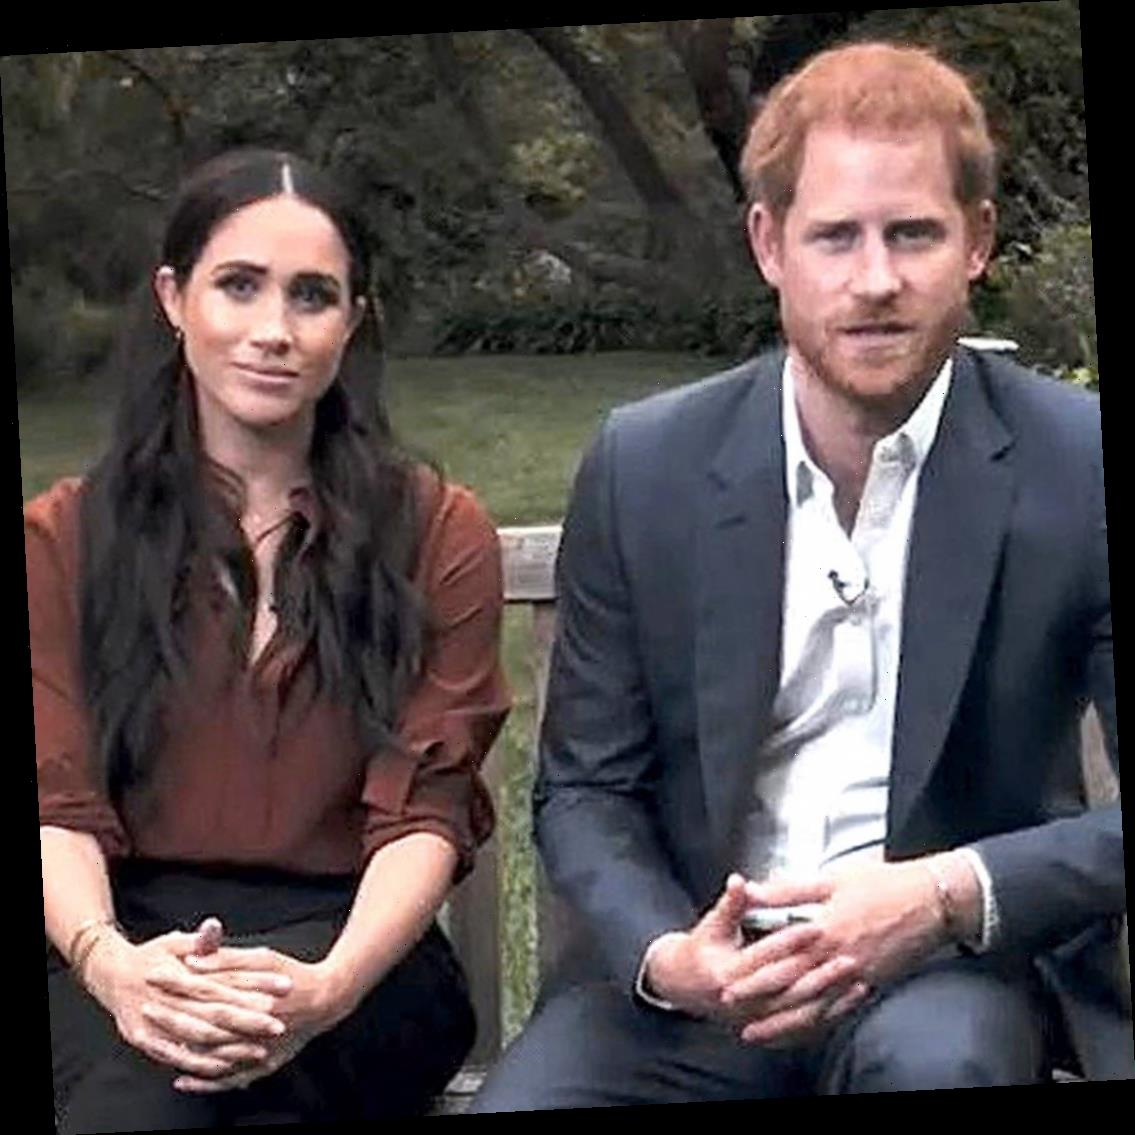 Getting Active: Inside Meghan Markle and Prince Harry's Foray Into Politics, Media and Social Justice